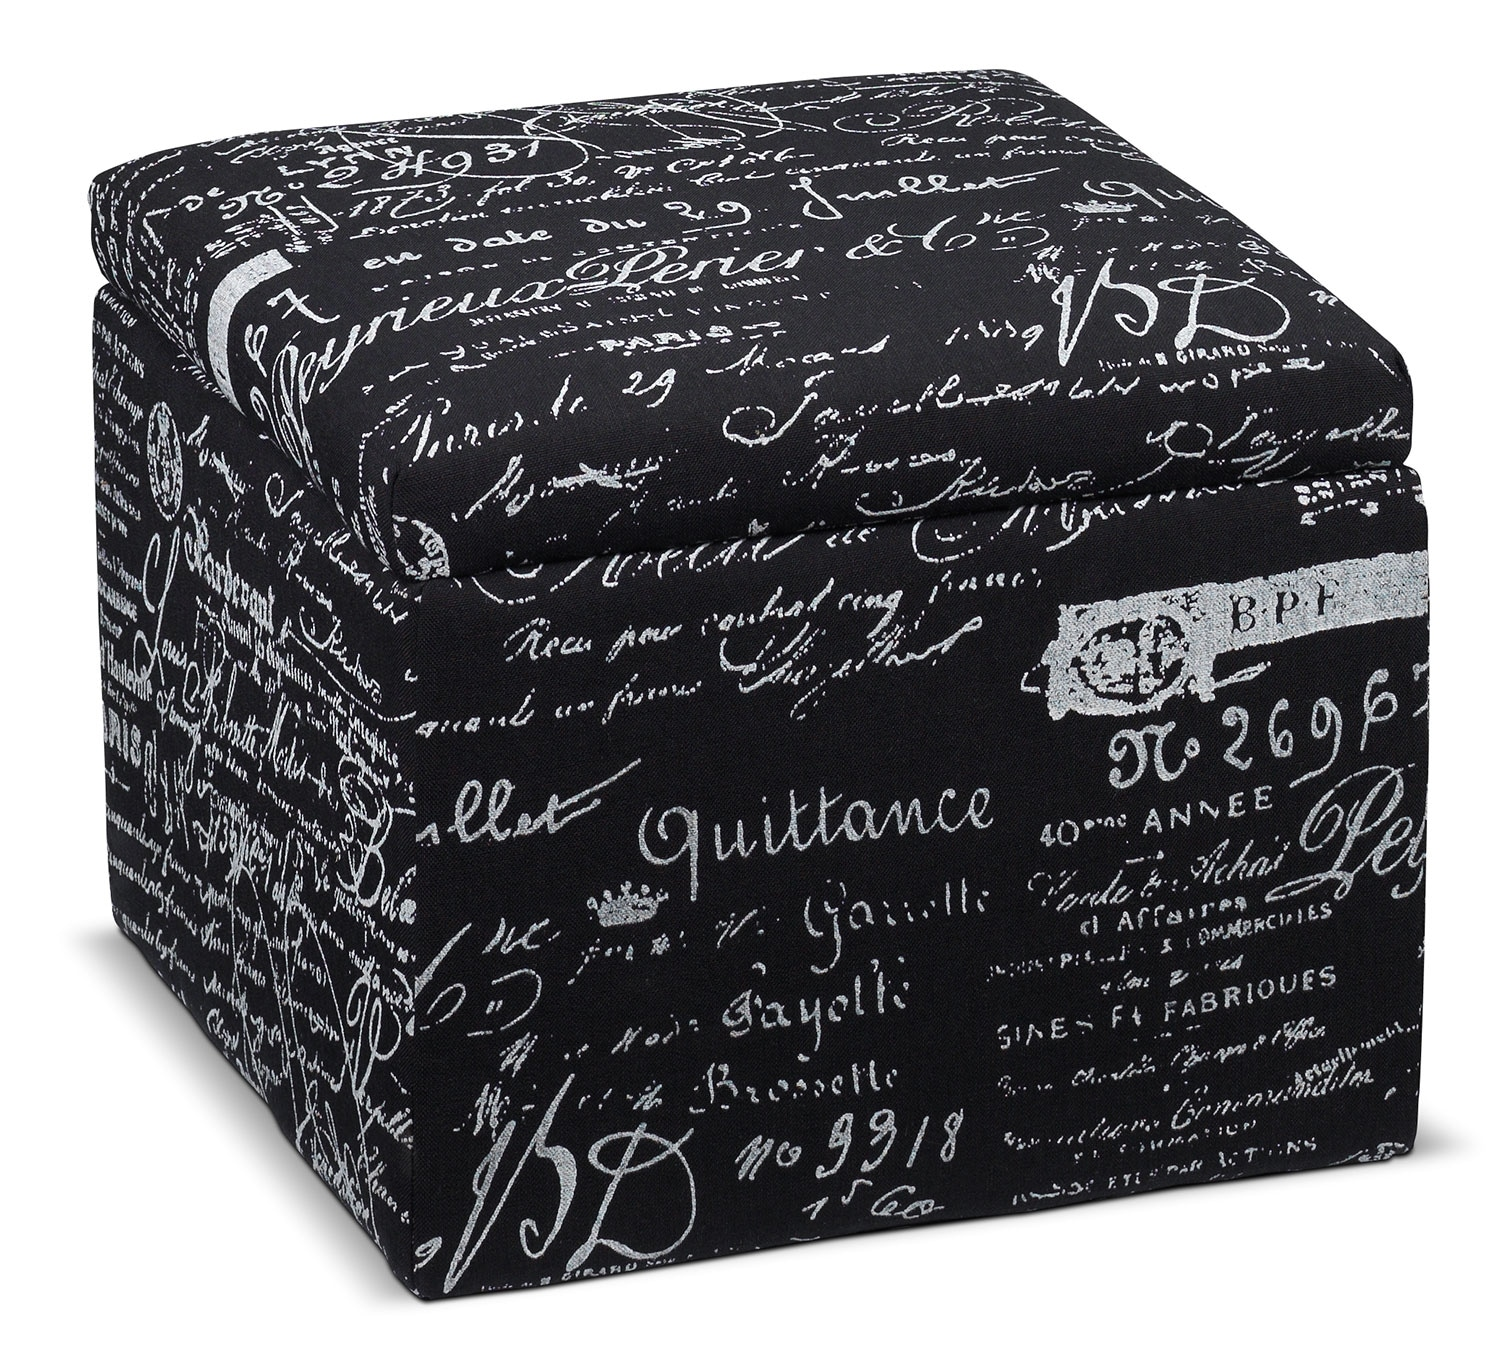 Living Room Furniture - Boardwalk Small Storage Ottoman - Scroll Black